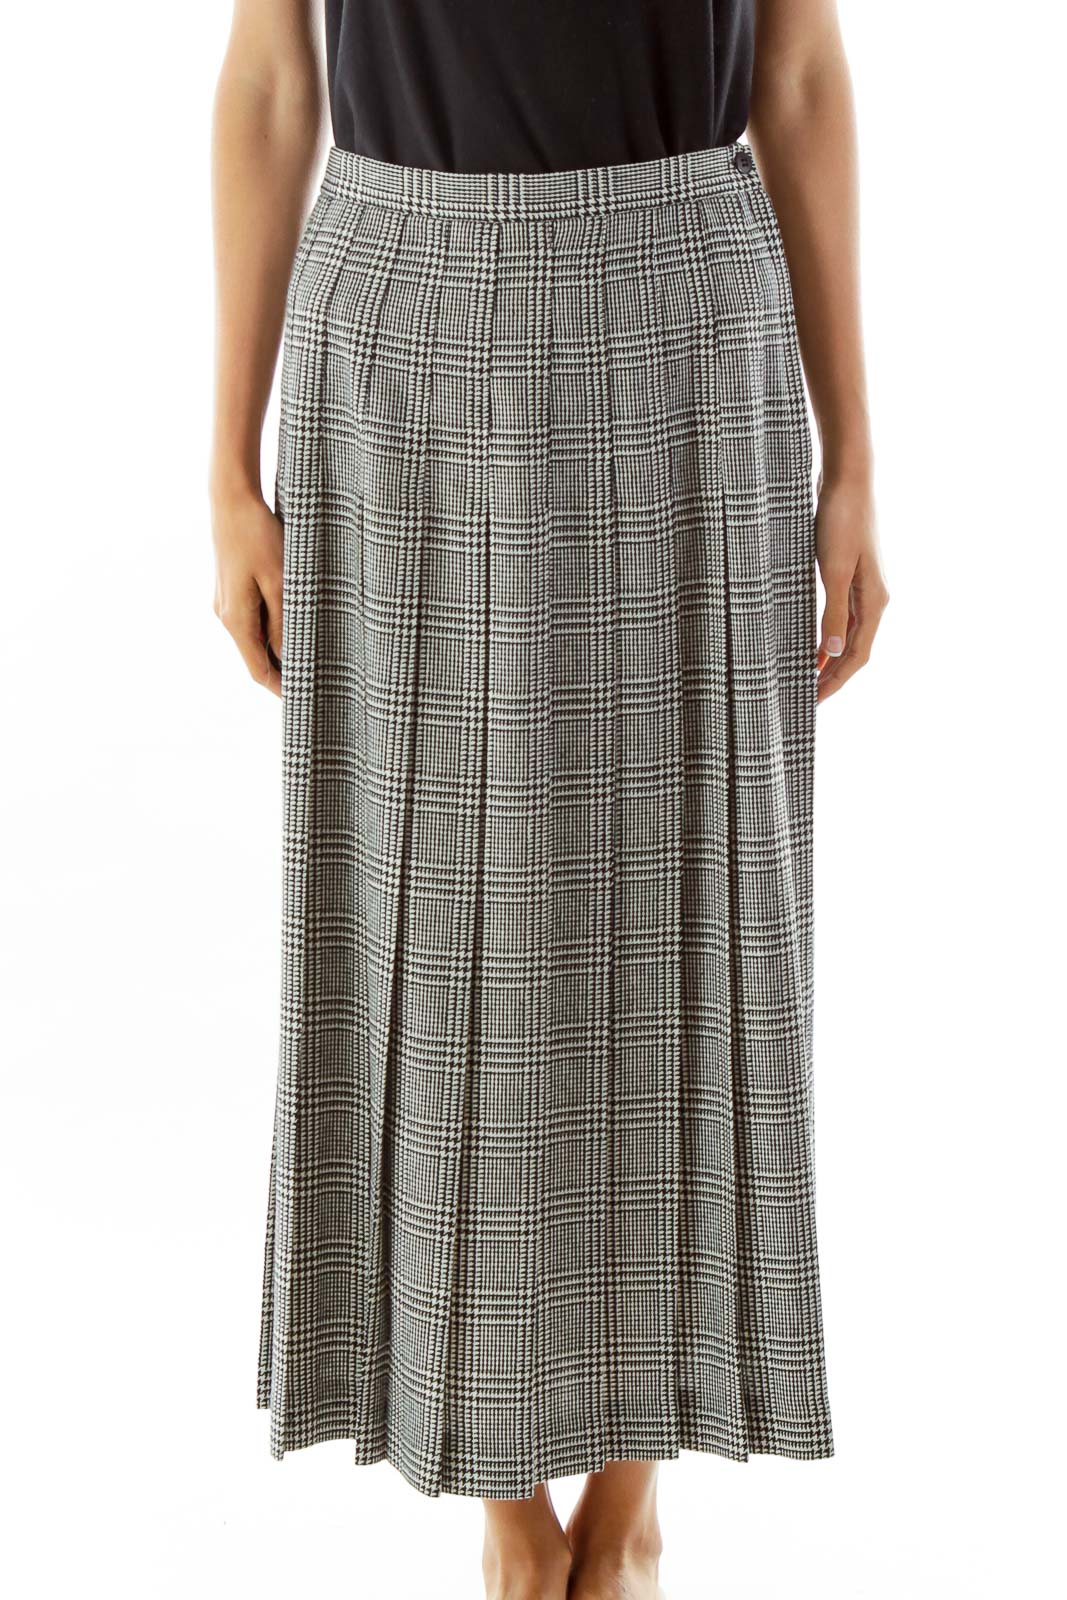 Black White Houndstooth Pleated Maxi Skirt Front